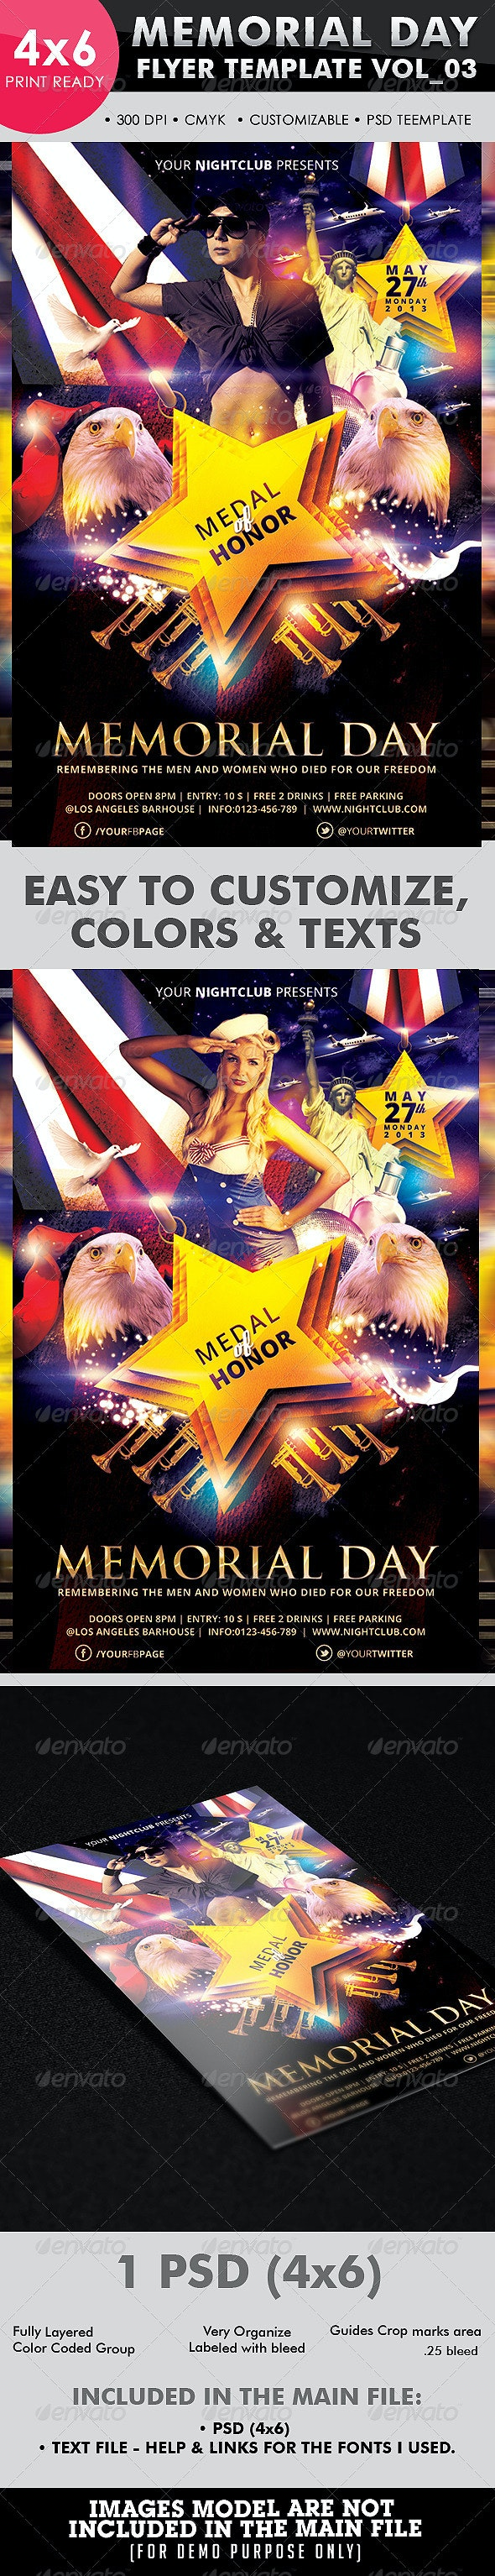 Memorial Day Flyer Template Vol 03 - Clubs & Parties Events